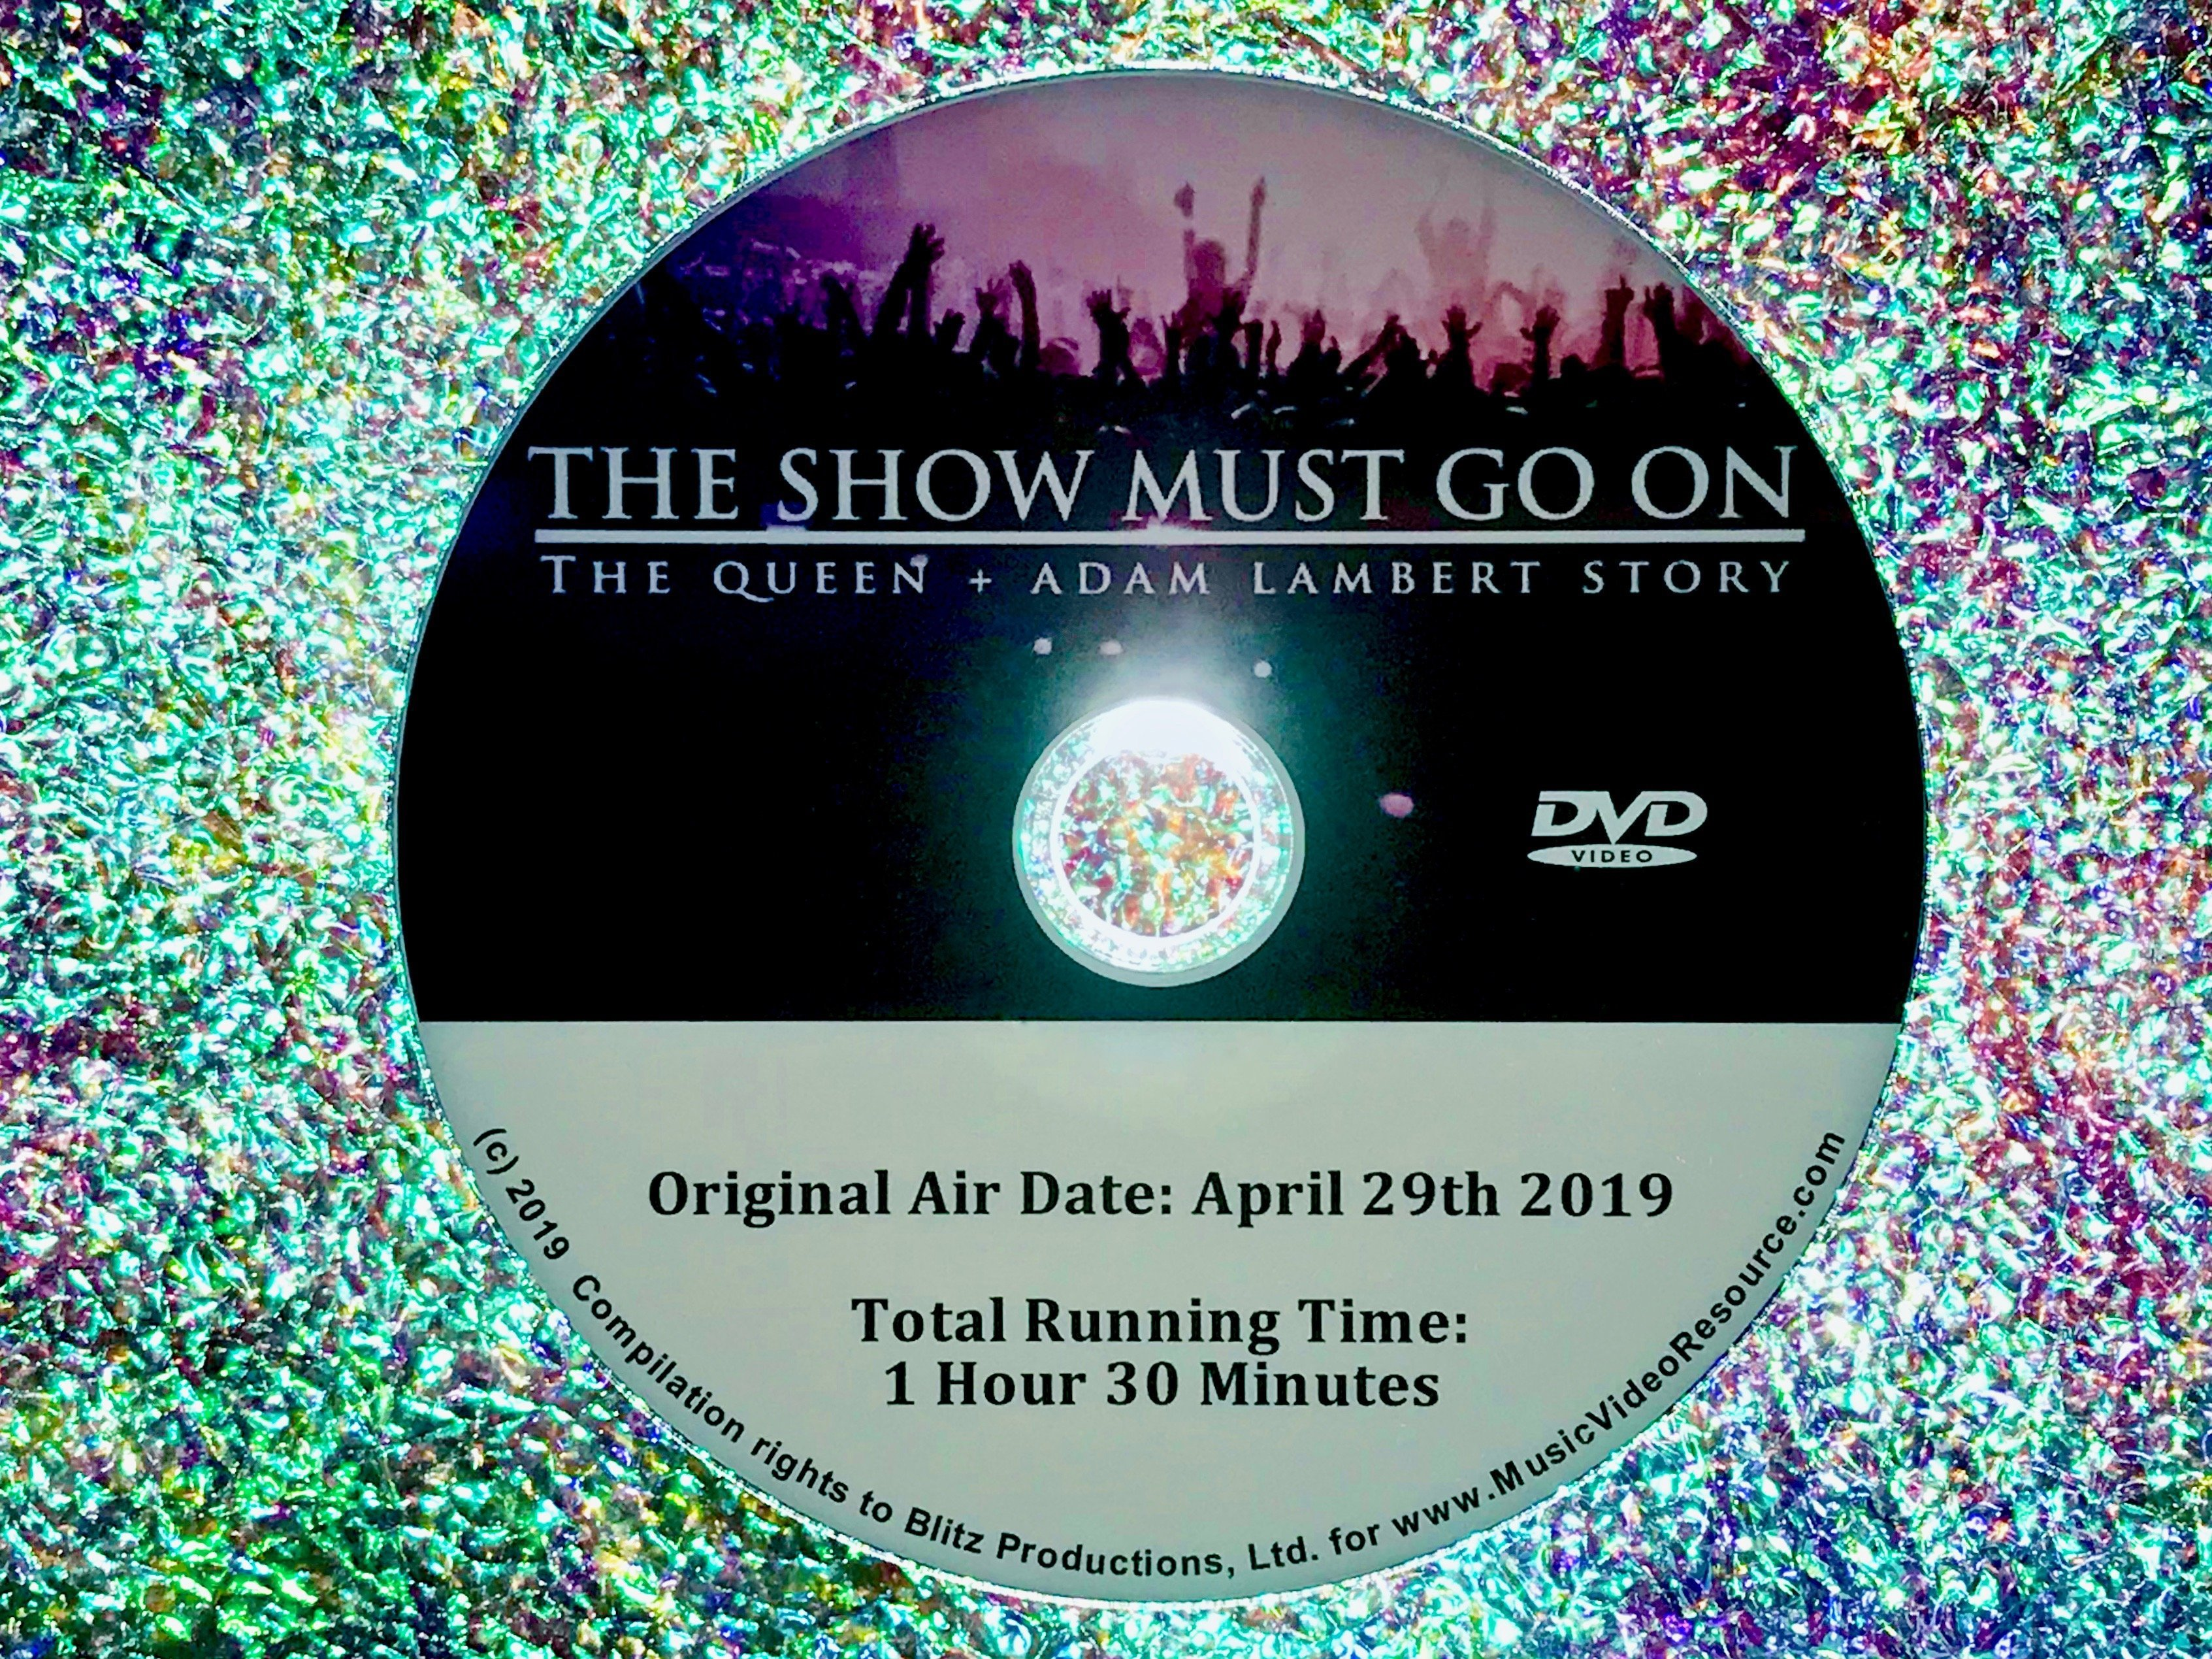 On go show must